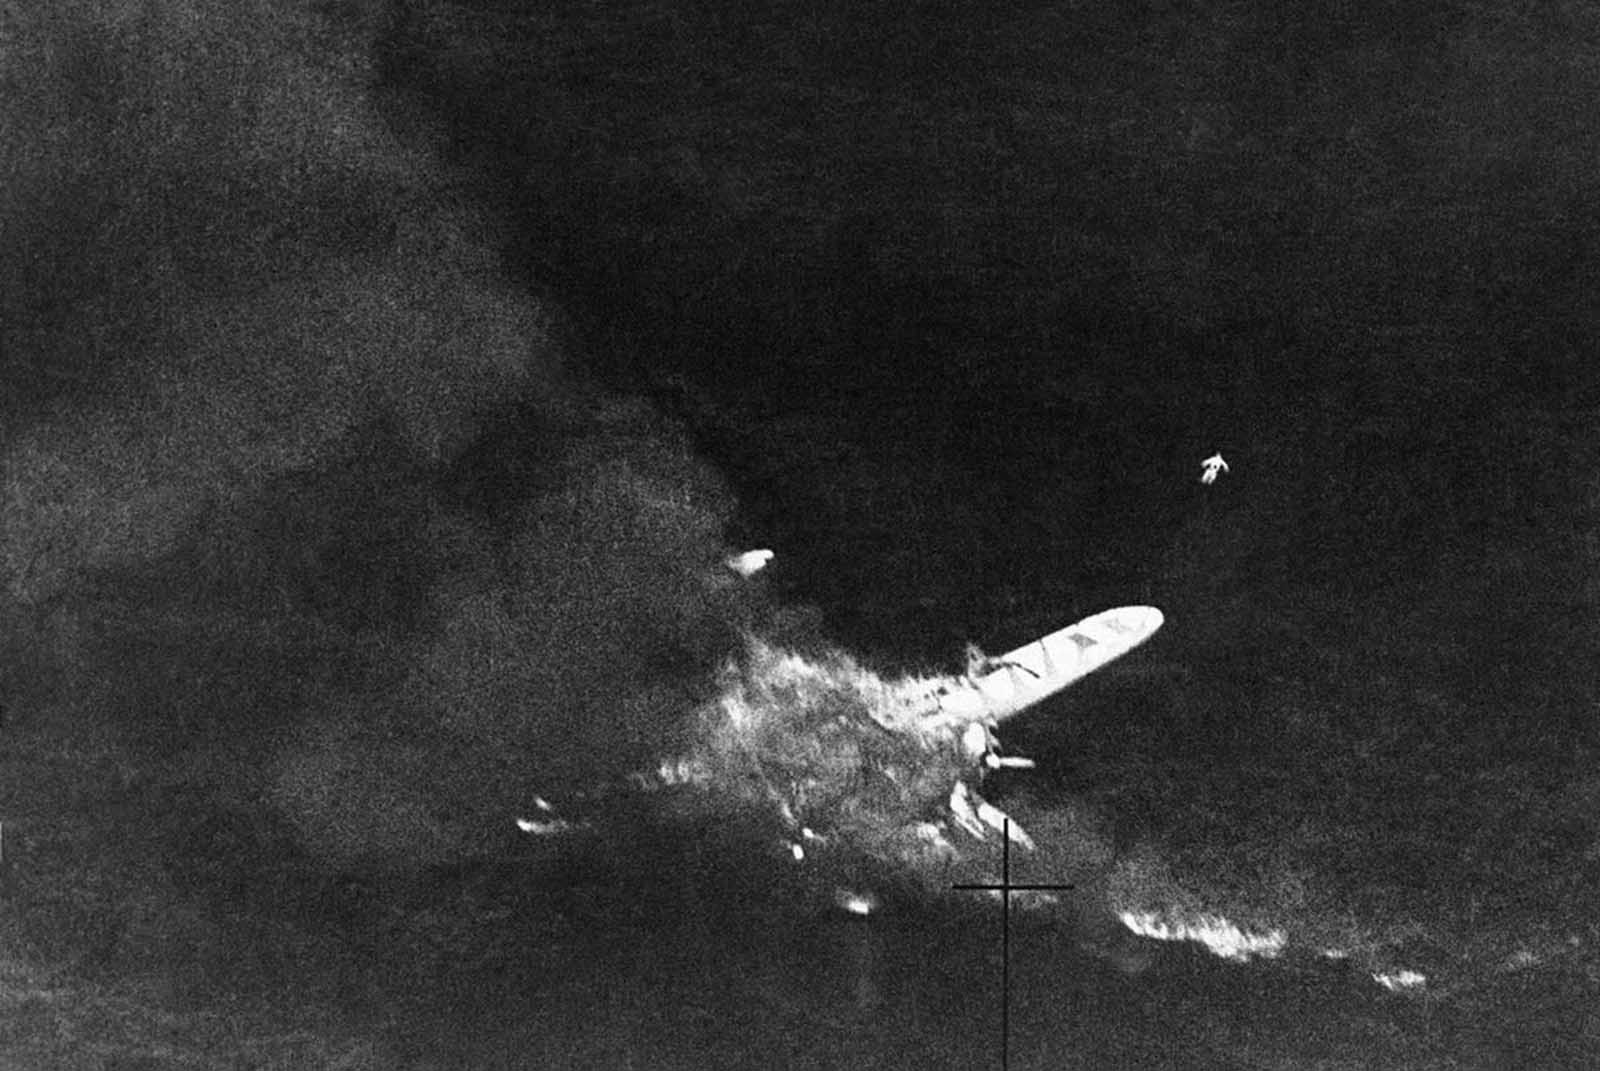 An Italian flying boat burning of the water off the coast of Tripoli, on August 18, 1941 after an encounter with a royal air force fighter patrol. Just above the tip of the port wing, the body of an Italian airman can be seen floating.